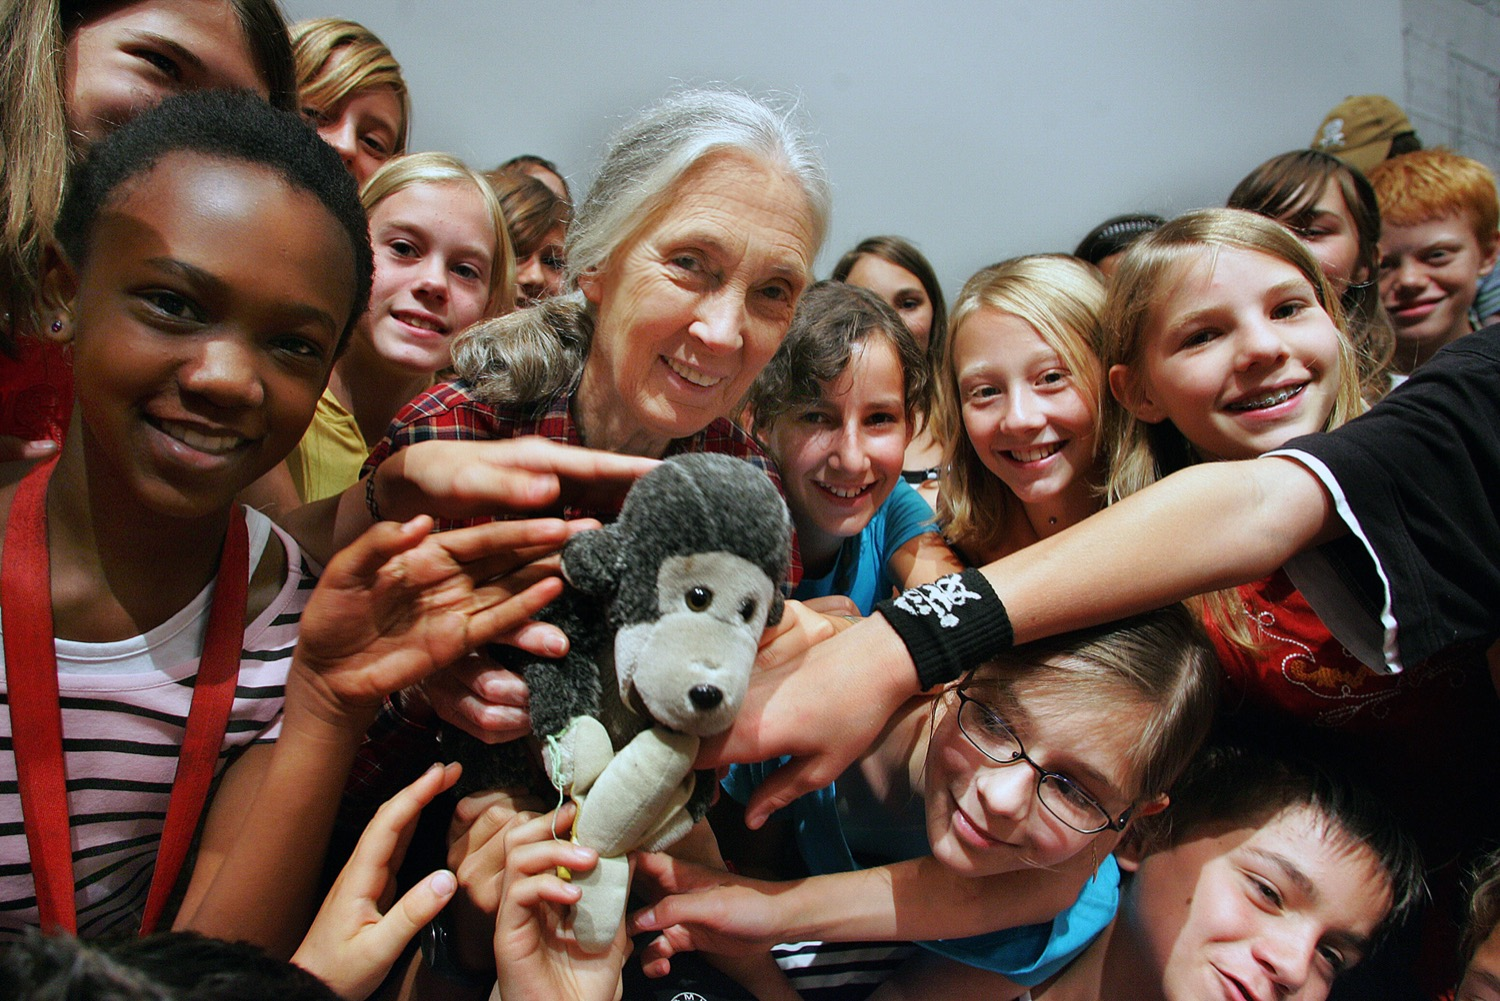 an older woman holds a stuffed monkey and is surrounded by smiling children